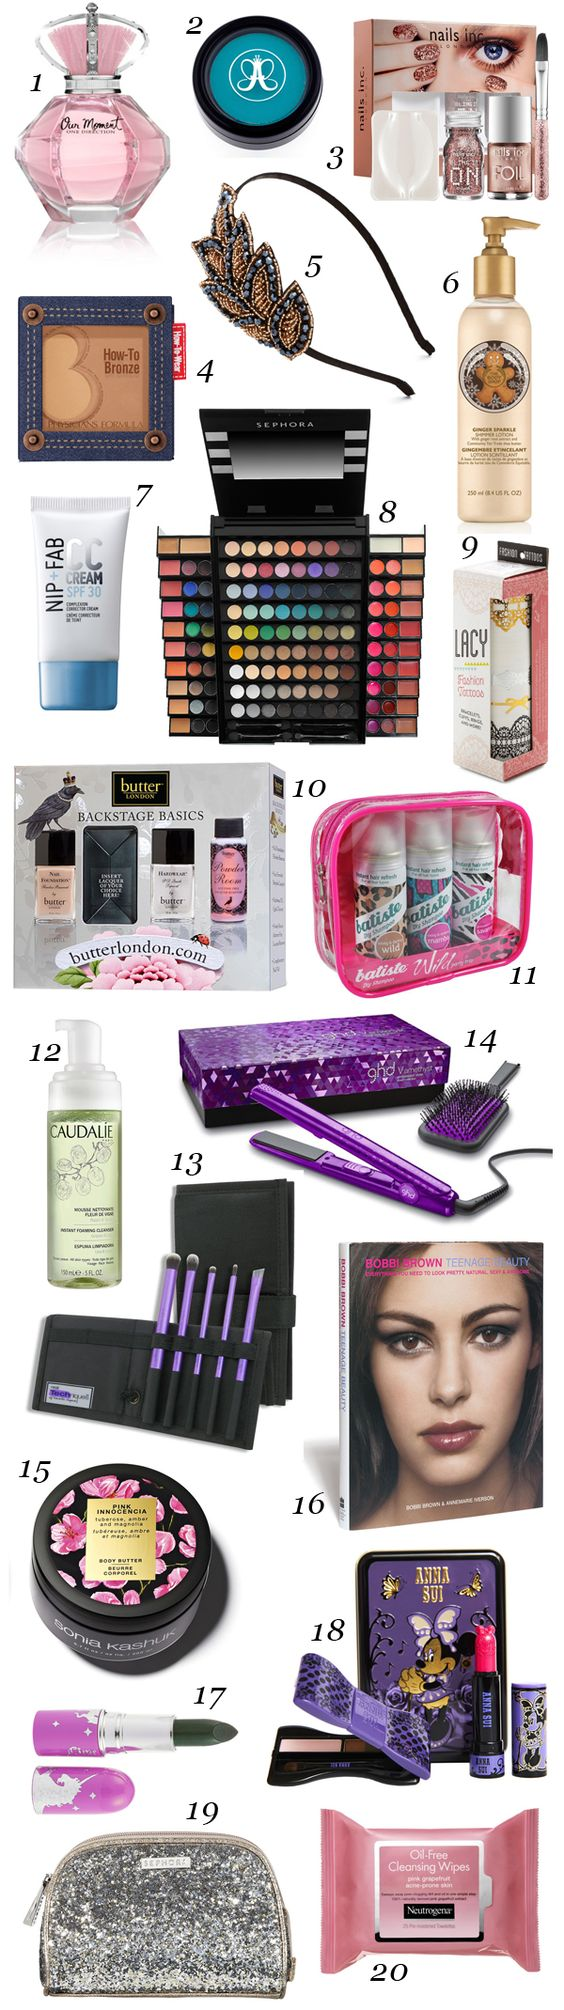 20 Beauty Gift Ideas for Teens and Tweens Girly gifts